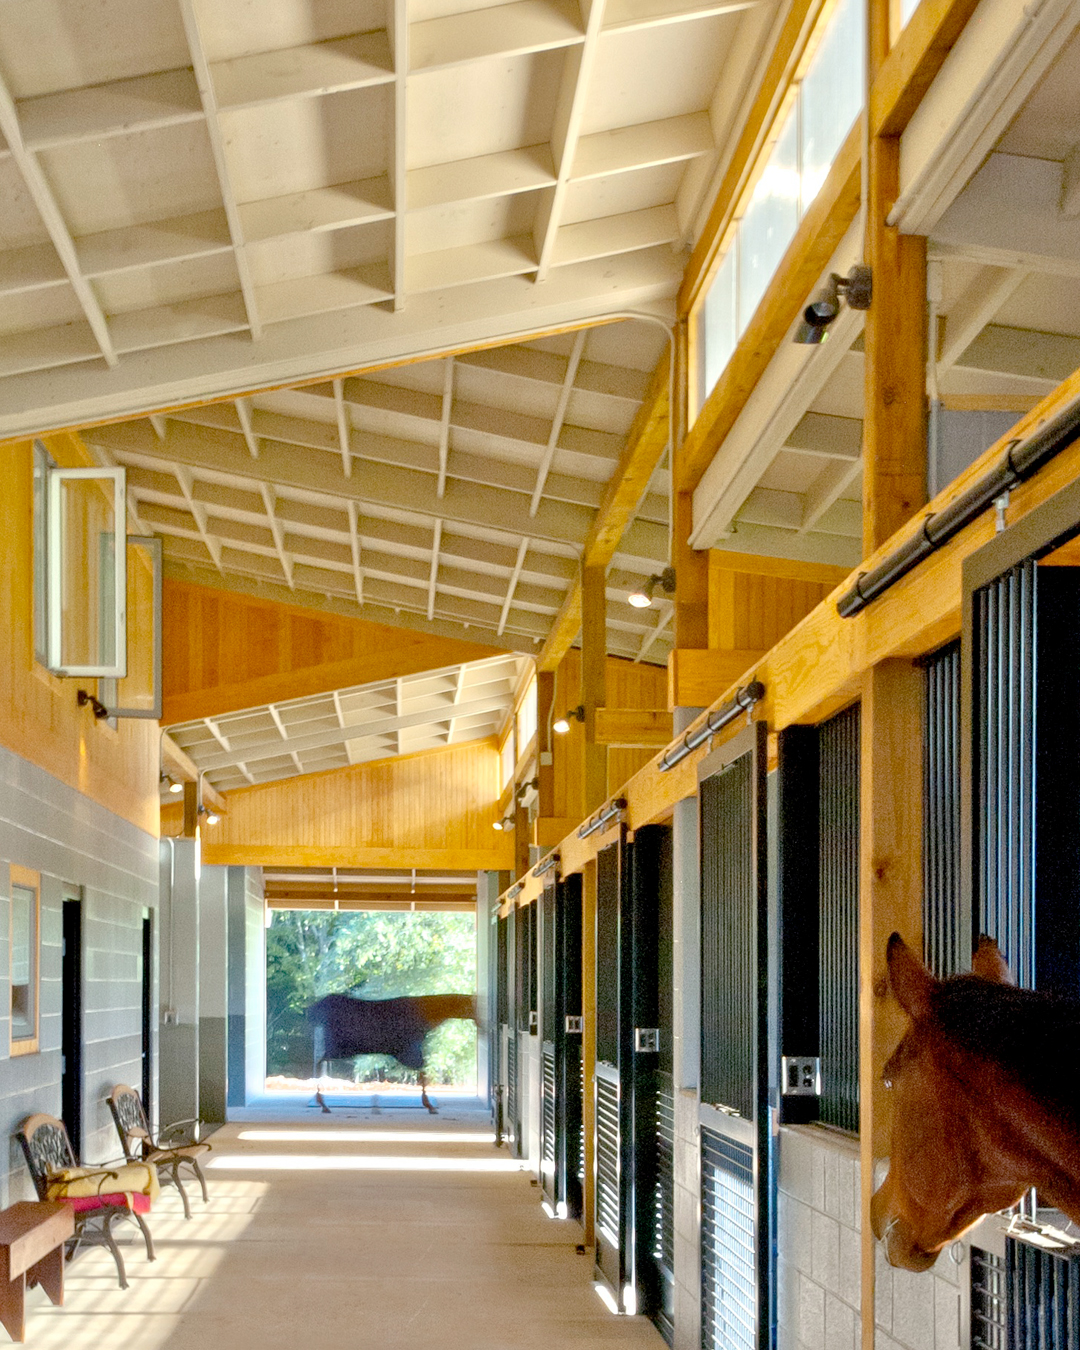 Horse Barn Design Archives Blackburn Architects P C Blackburn Architects P C